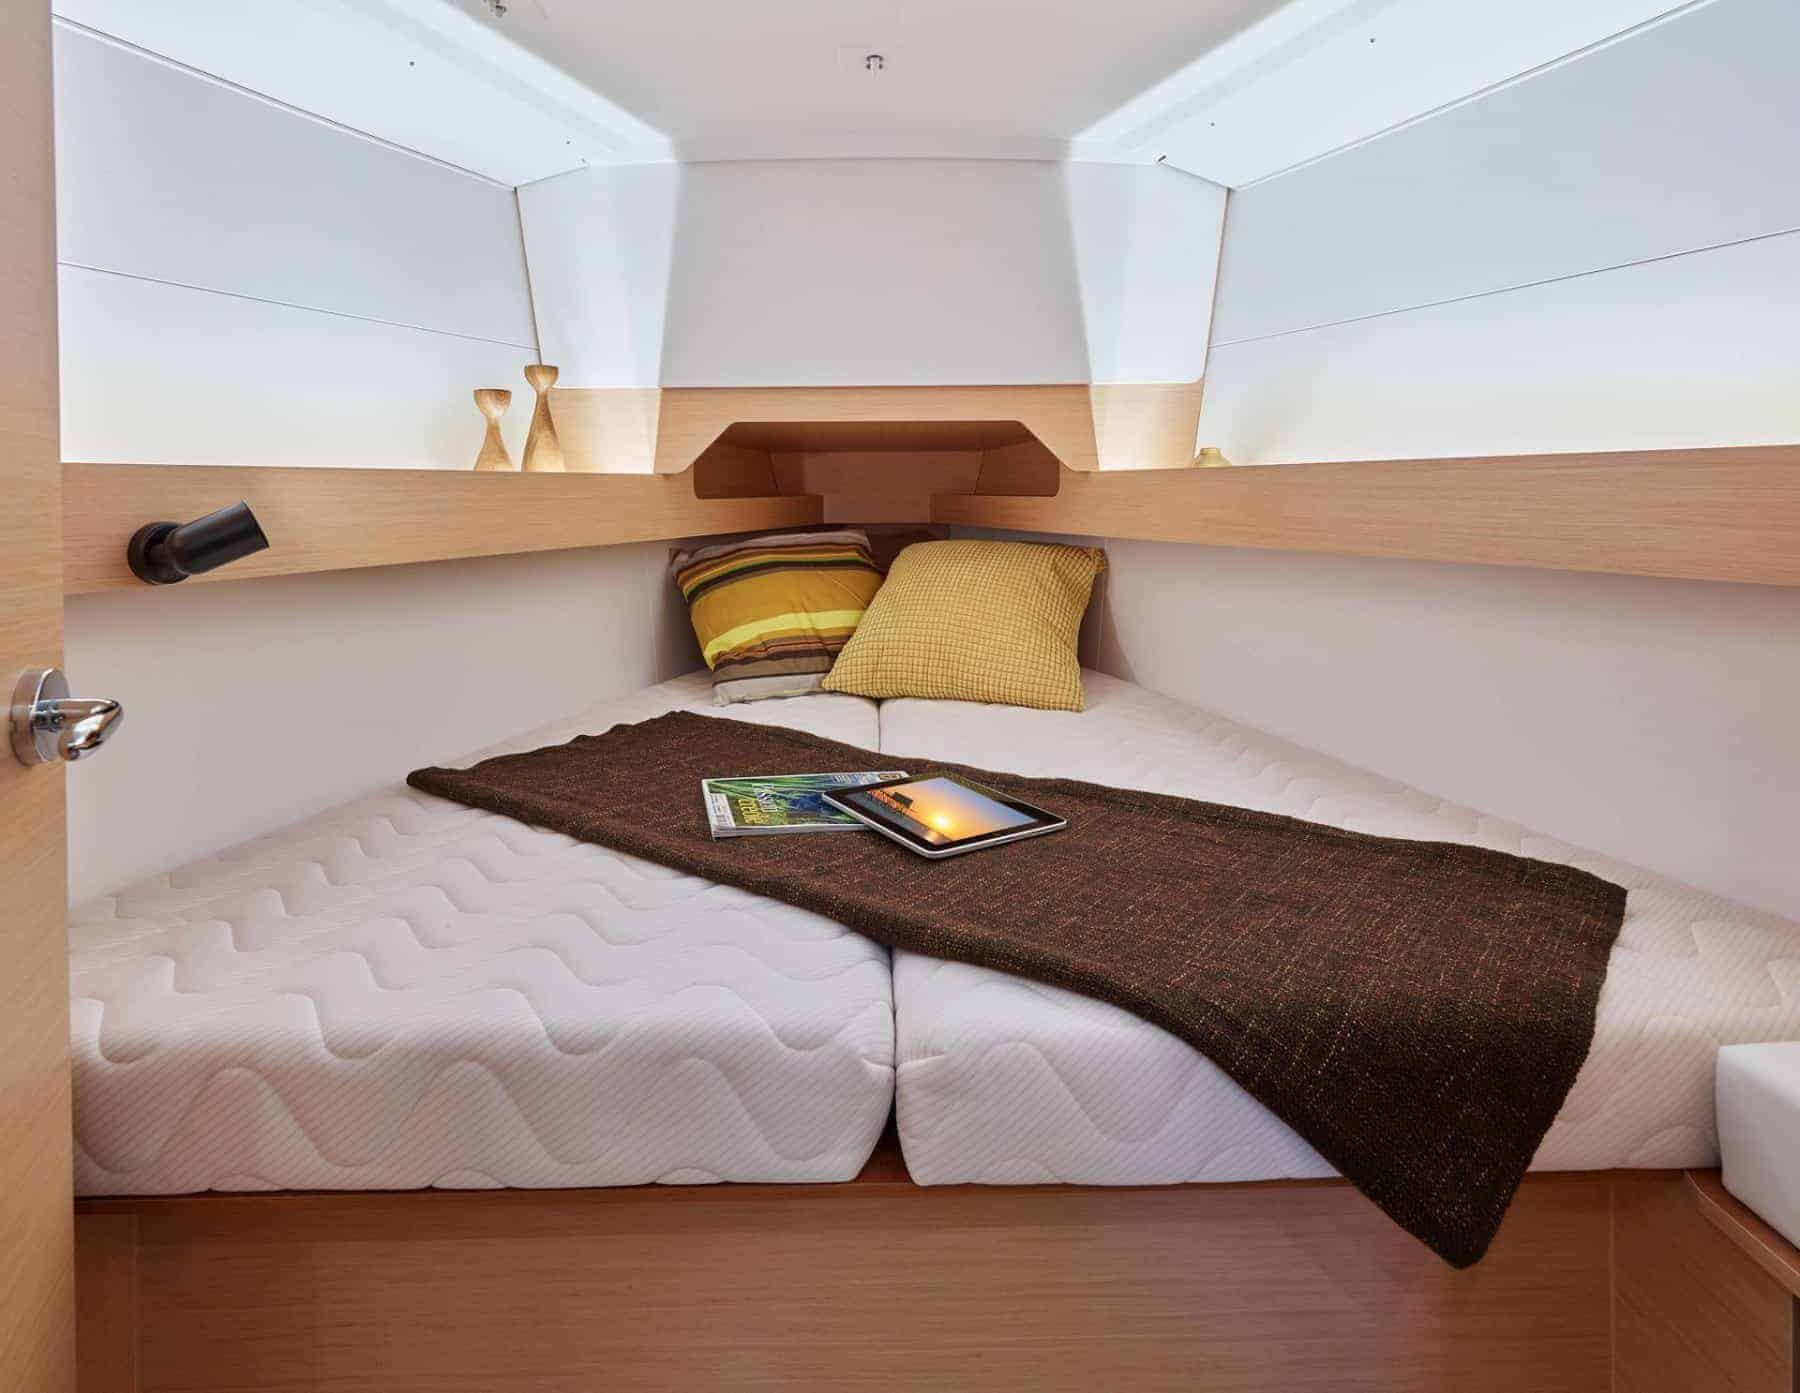 Jeanneau Sun Odyssey 349's owners cabin with a made bed